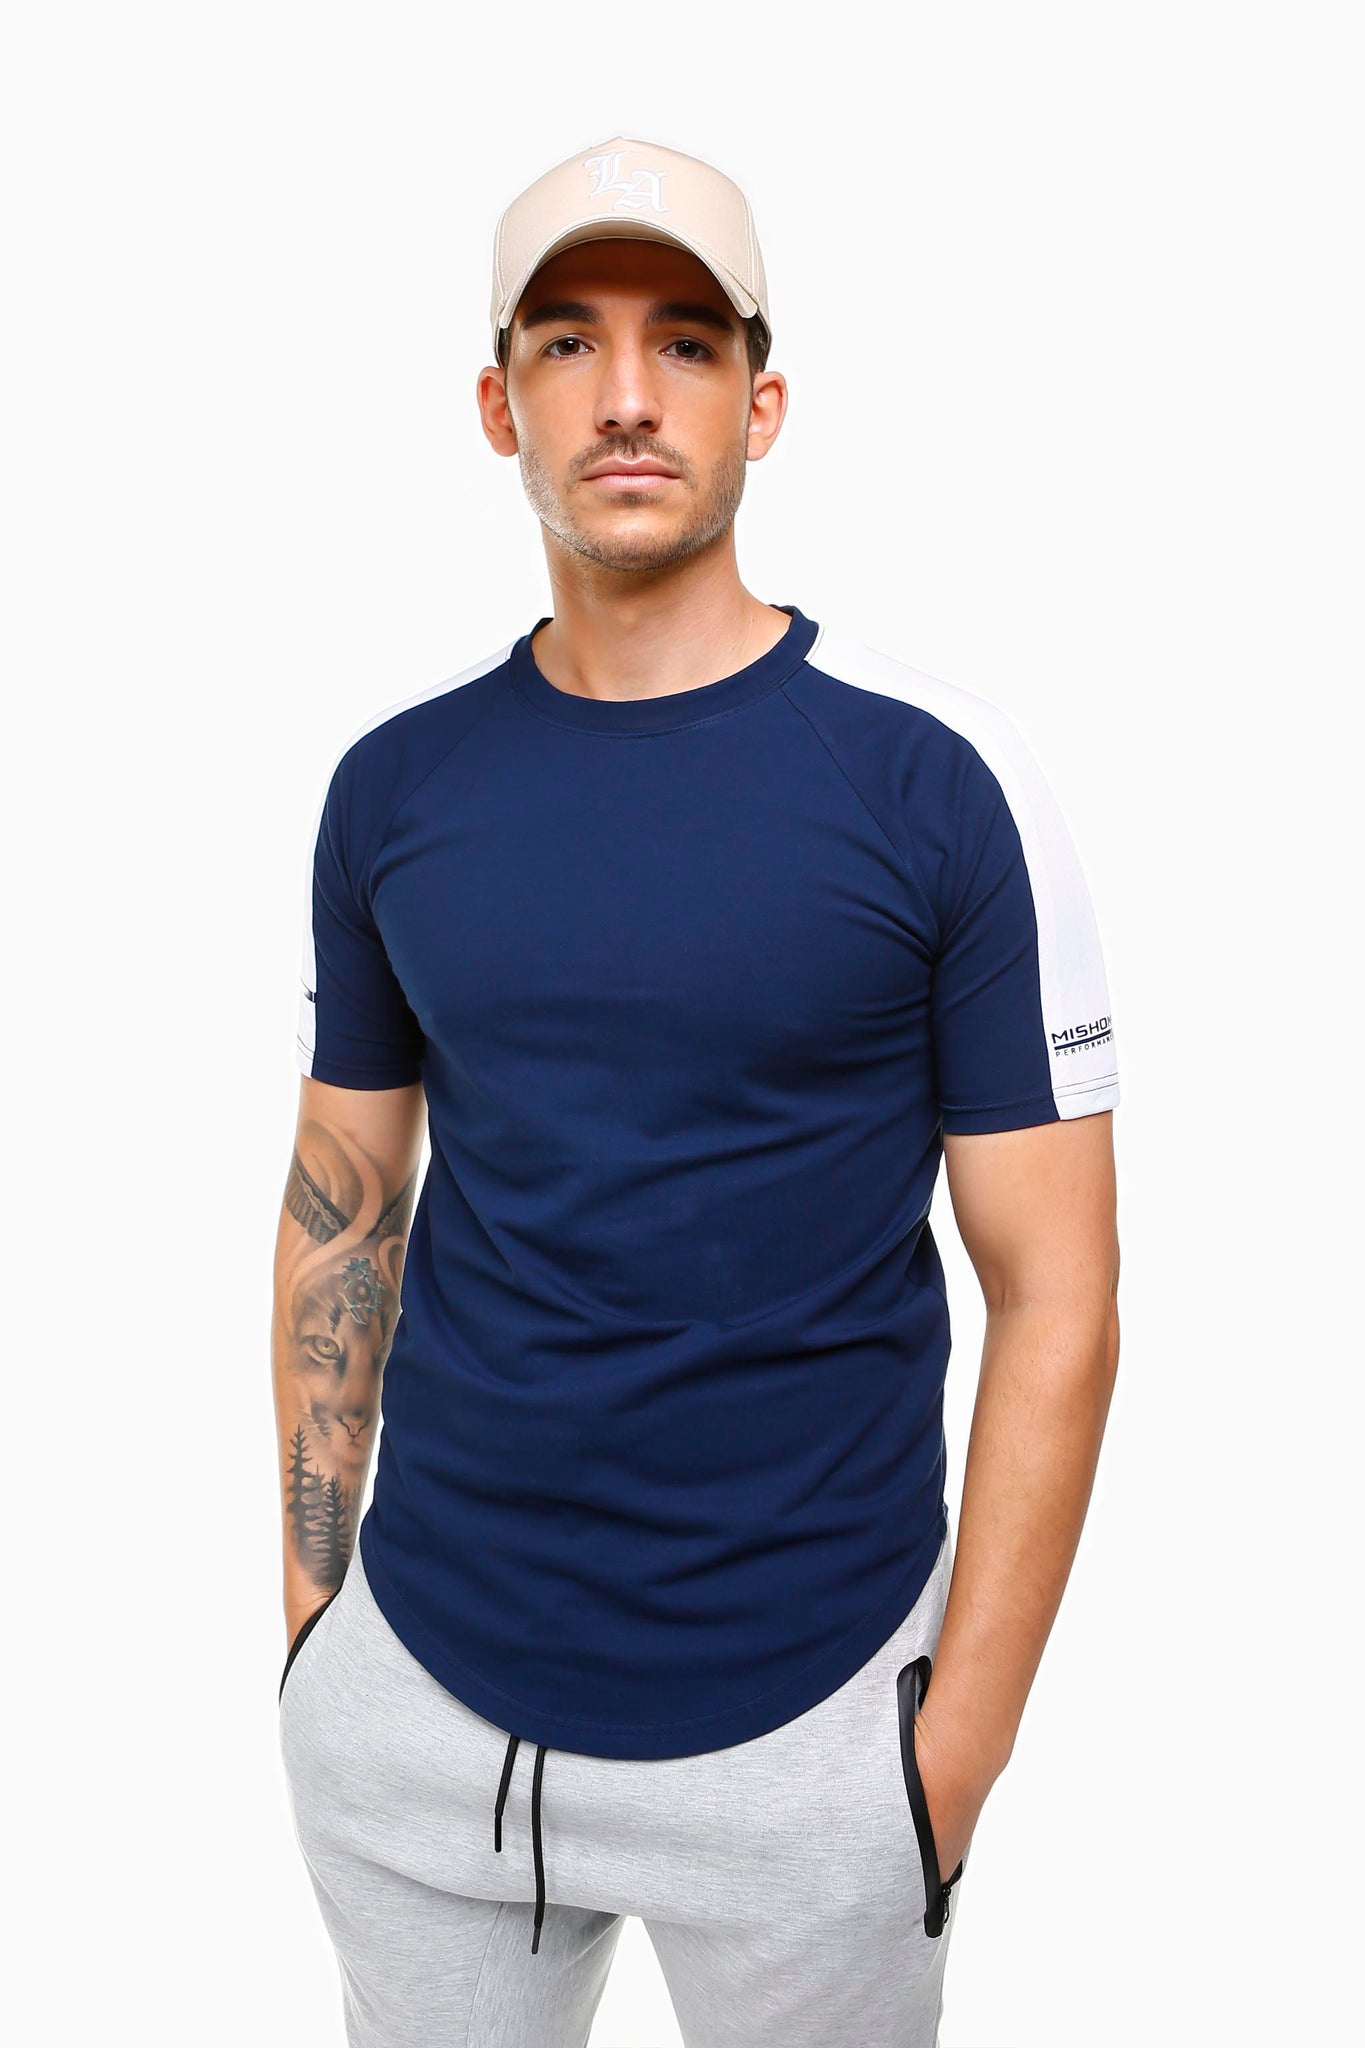 Pursuance Tee - Navy